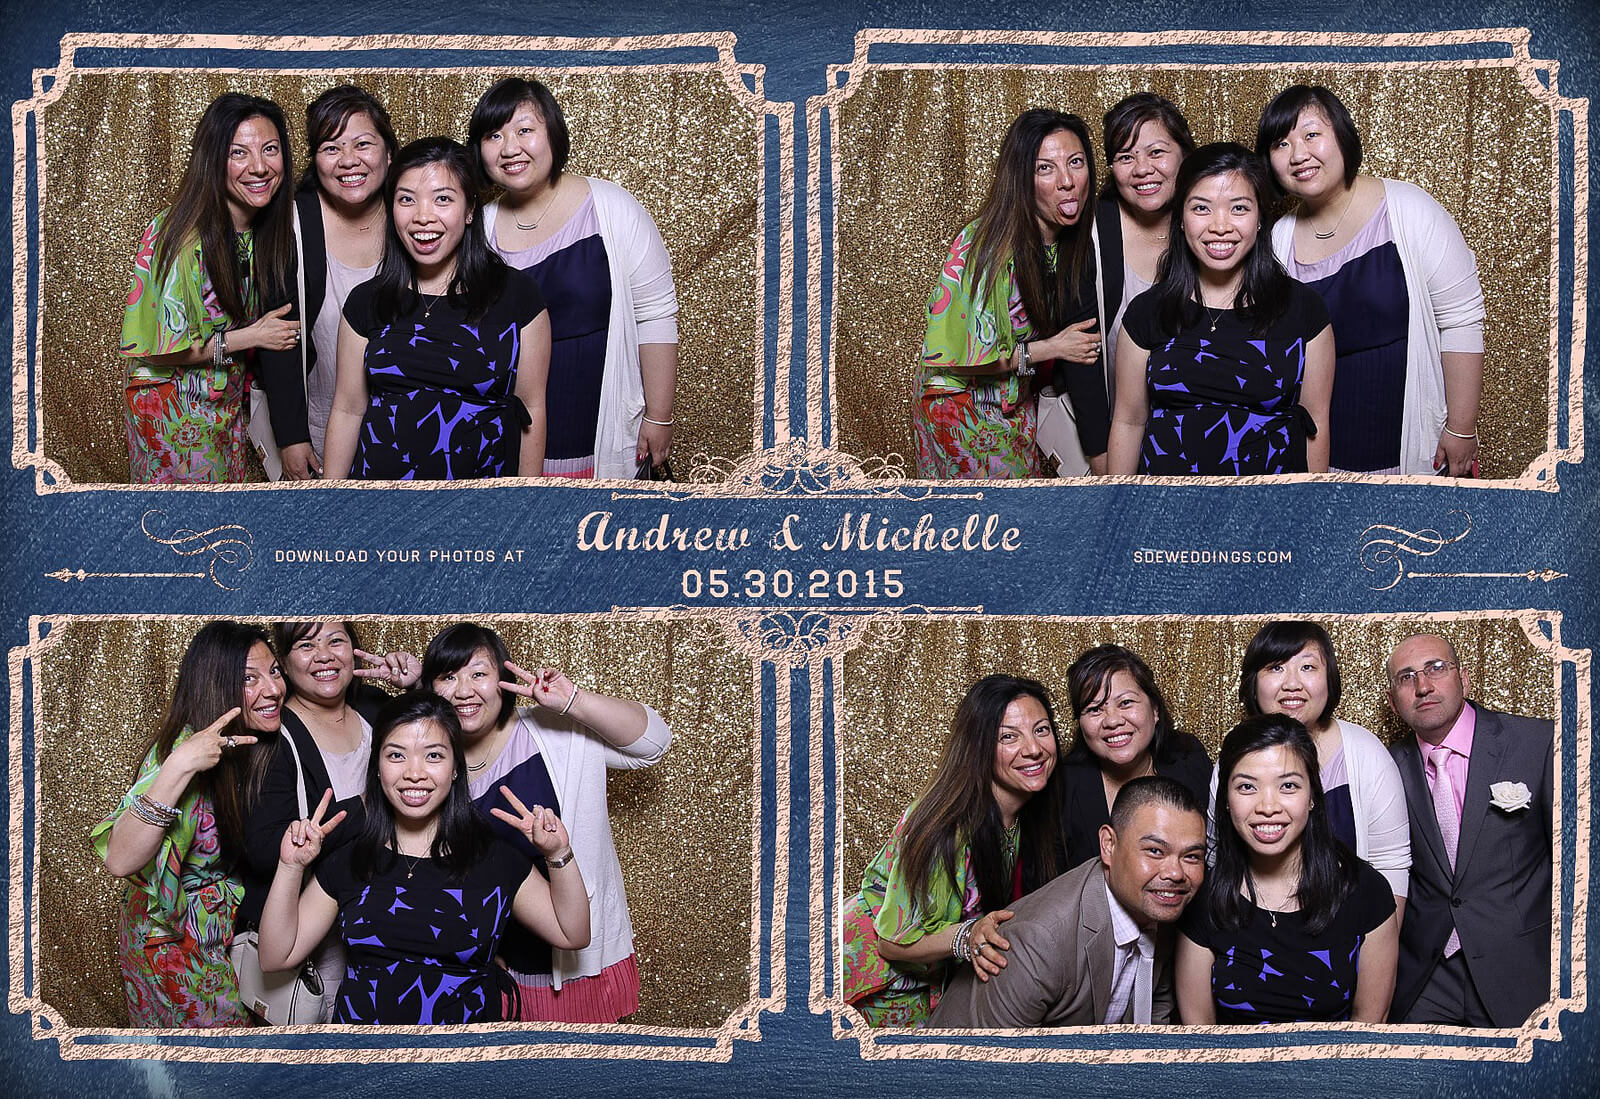 Toronto Police Wedding Photobooth at Peel Regional Police Association Banquet Hall 1